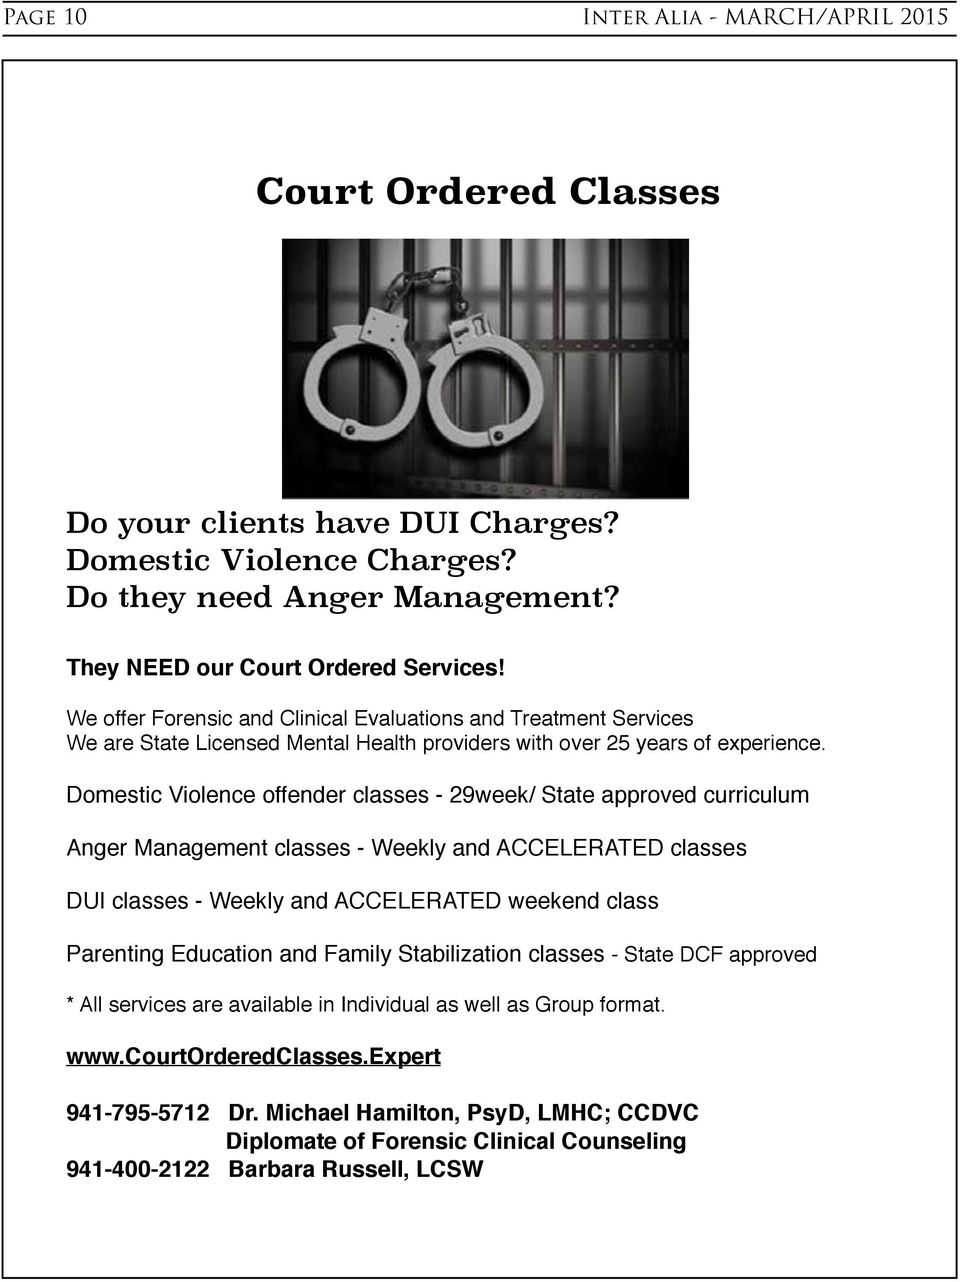 Domestic Violence offender classes - 29week/ State approved curriculum Anger Management classes - Weekly and ACCELERATED classes DUI classes - Weekly and ACCELERATED weekend class Parenting Education